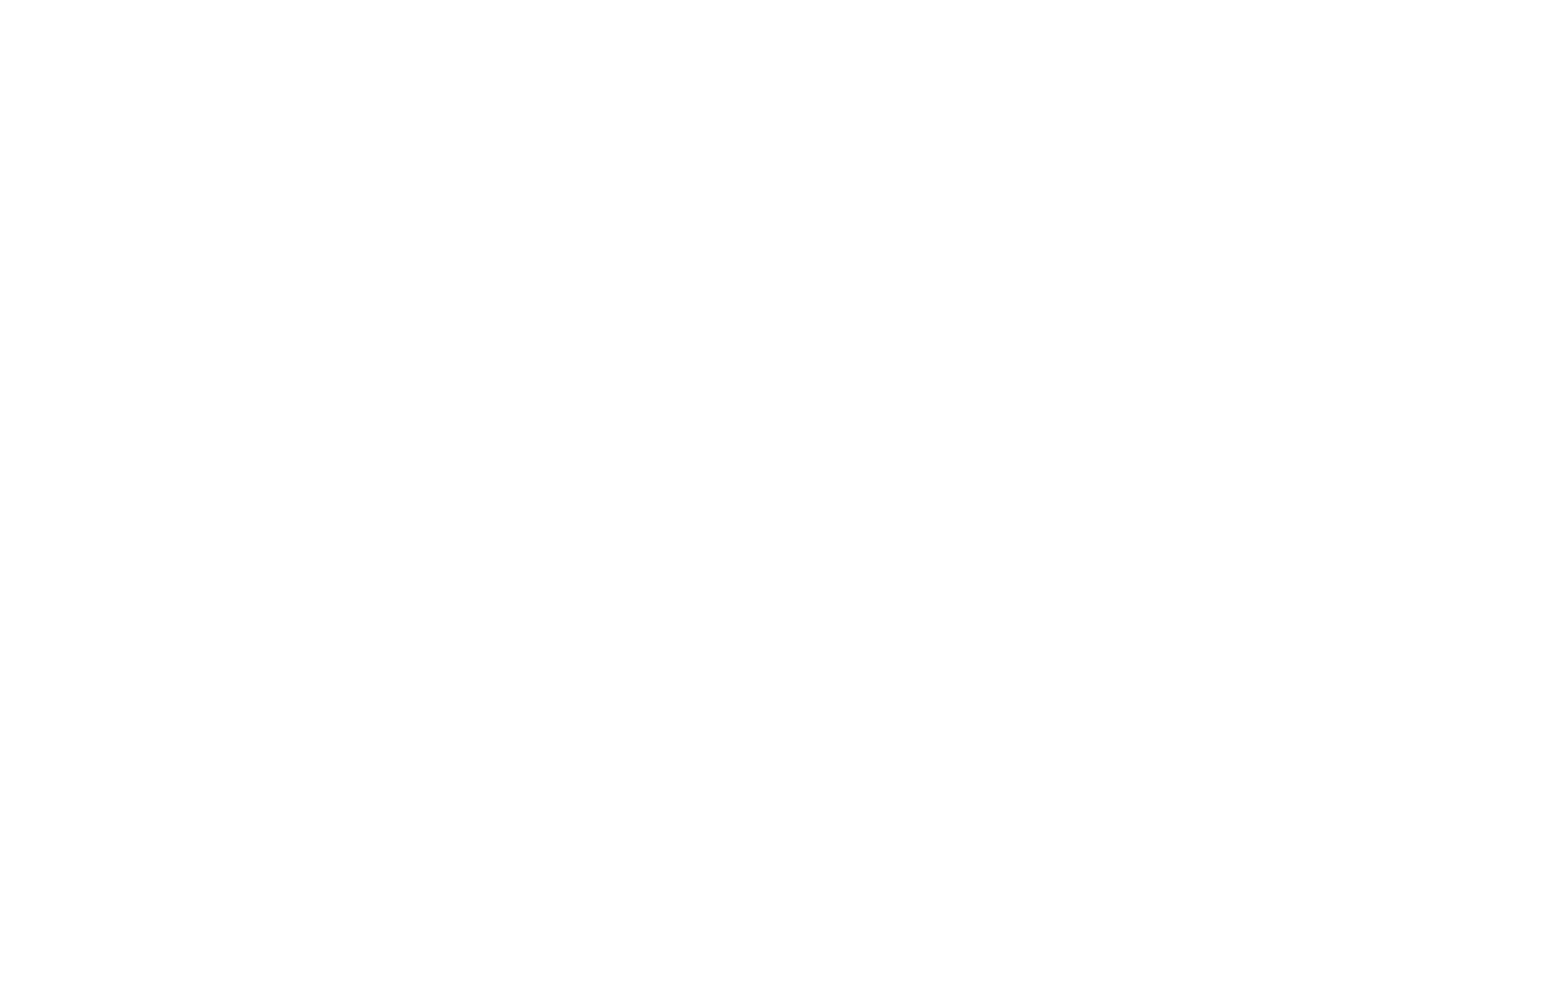 Crissel New York Hair Salon